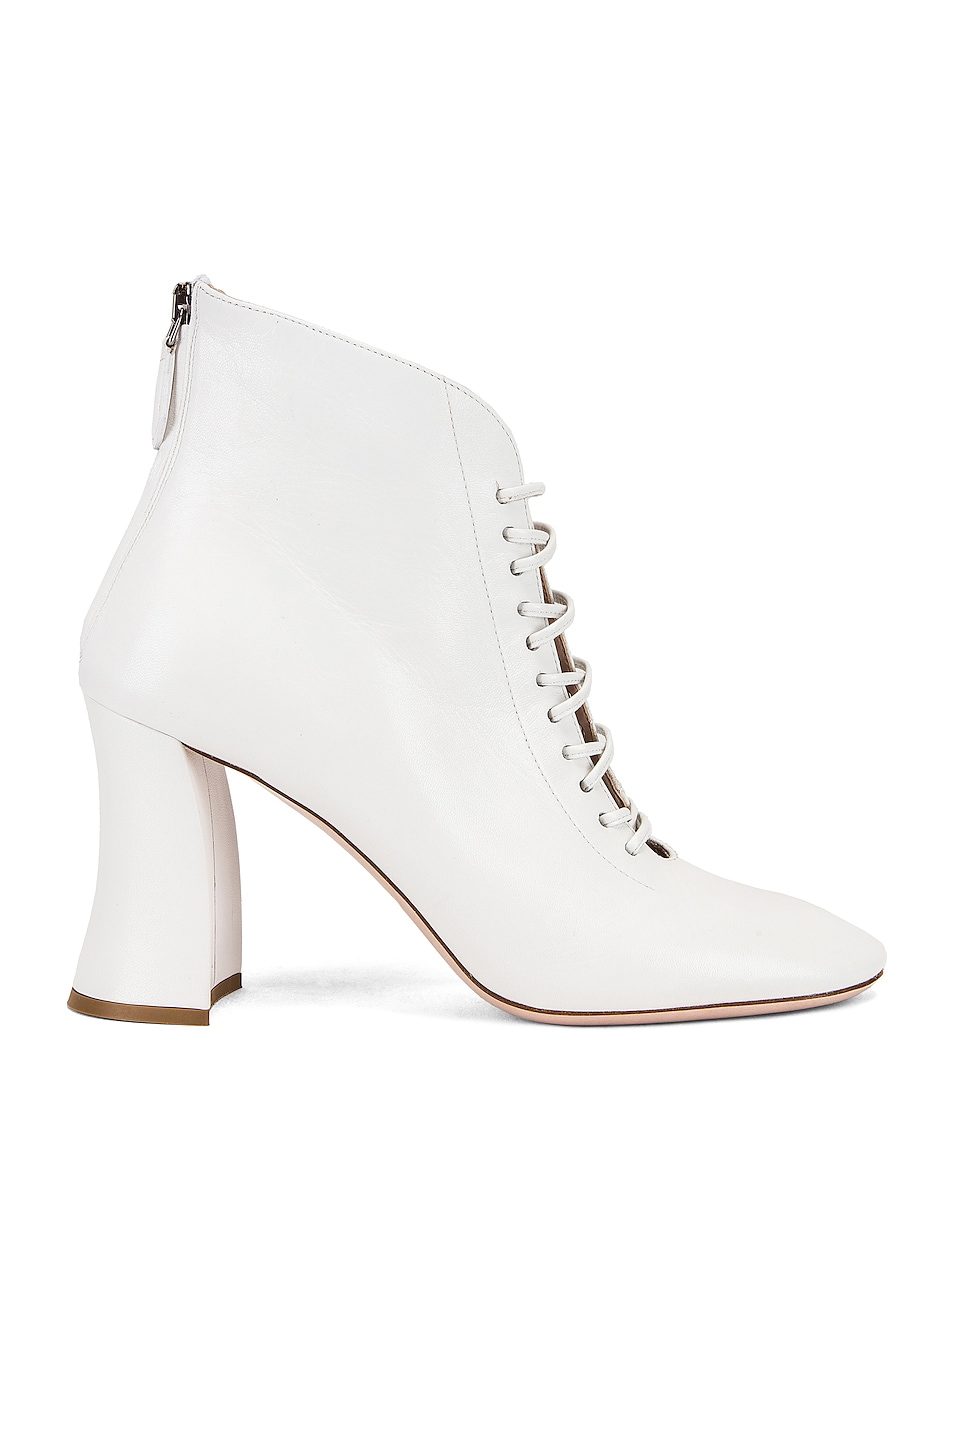 Image 1 of Miu Miu Lace Up Ankle Boots in White